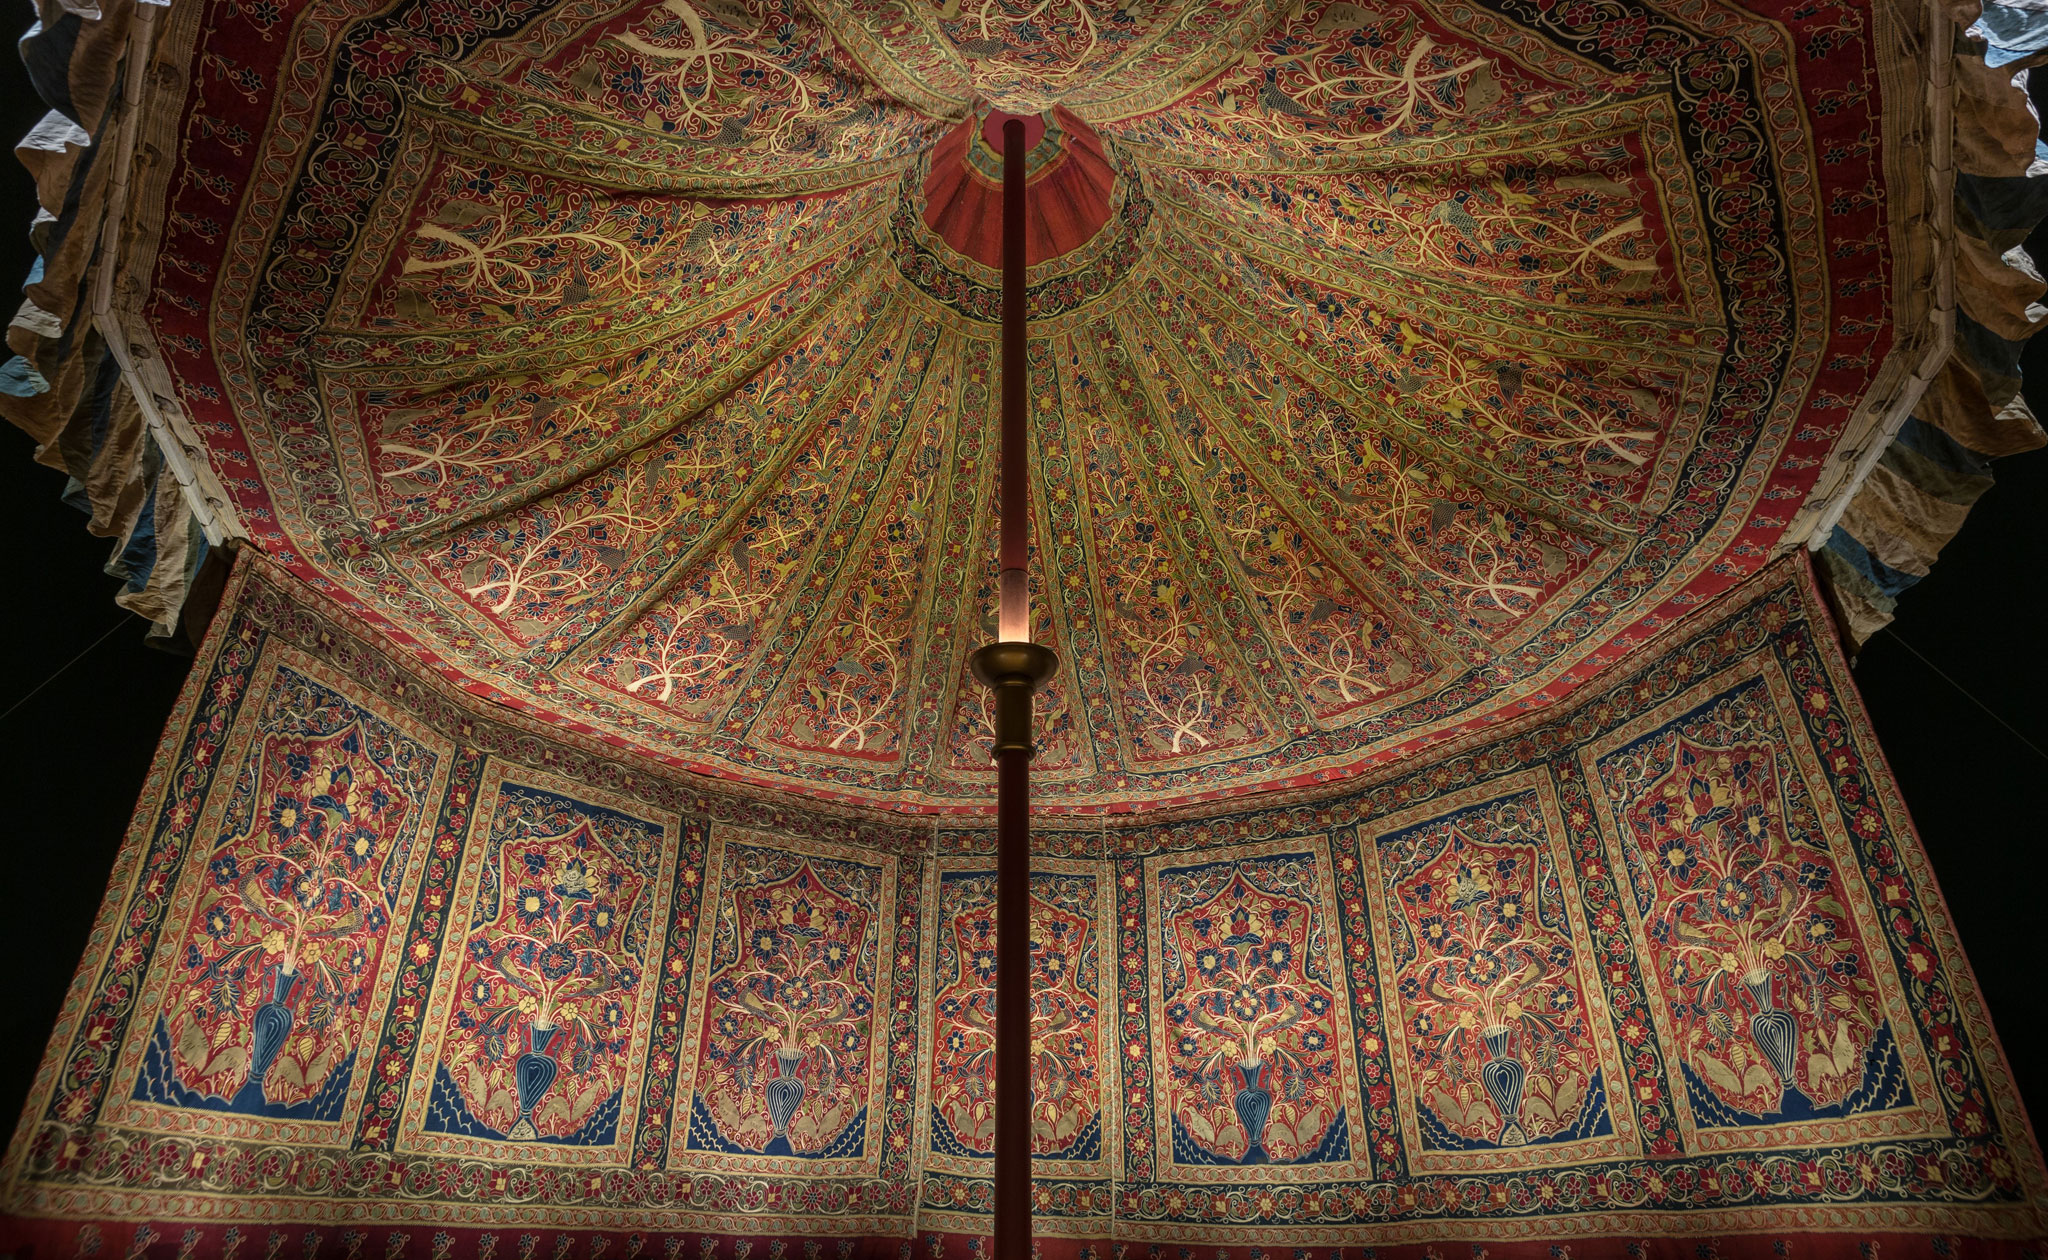 Muhammad Shah's Royal Persian Tent - Cleveland Museum of Art - Interior Canopy | Image courtesy of The Cleveland Museum of Art